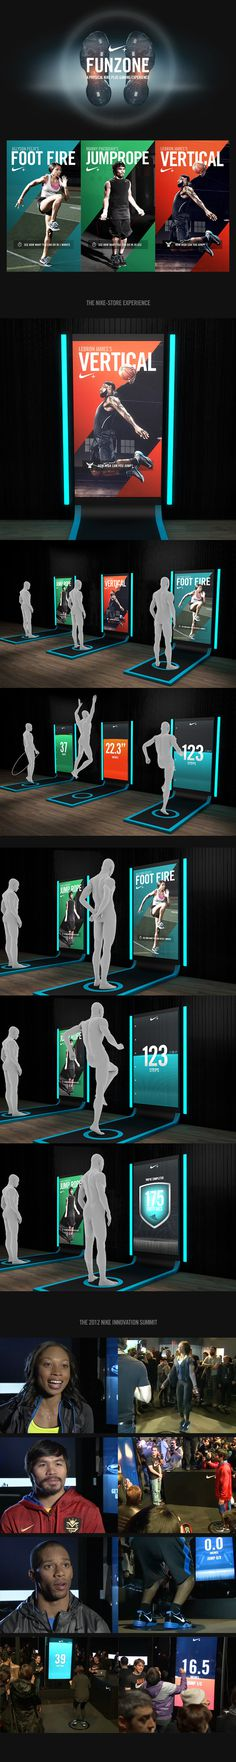 Nike+ FunZone on Behance